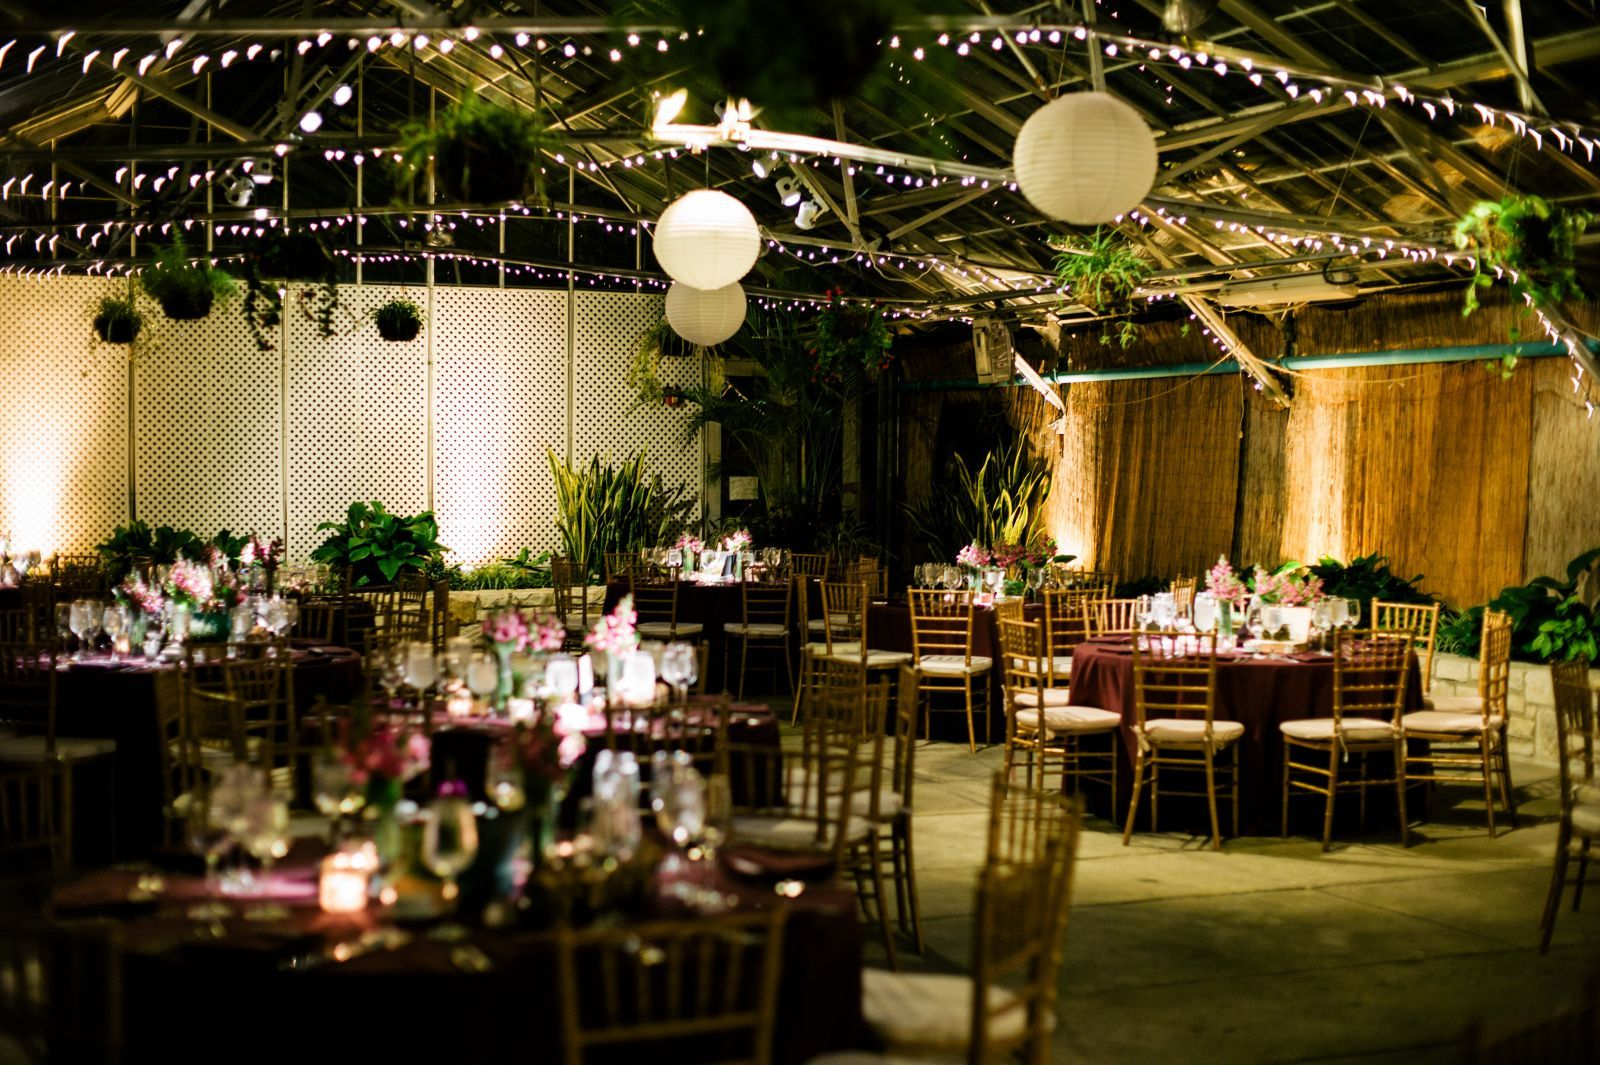 Outdoor Park Or Indoor Room For Wedding Ceremony: Fairmount Park Horticulture Center